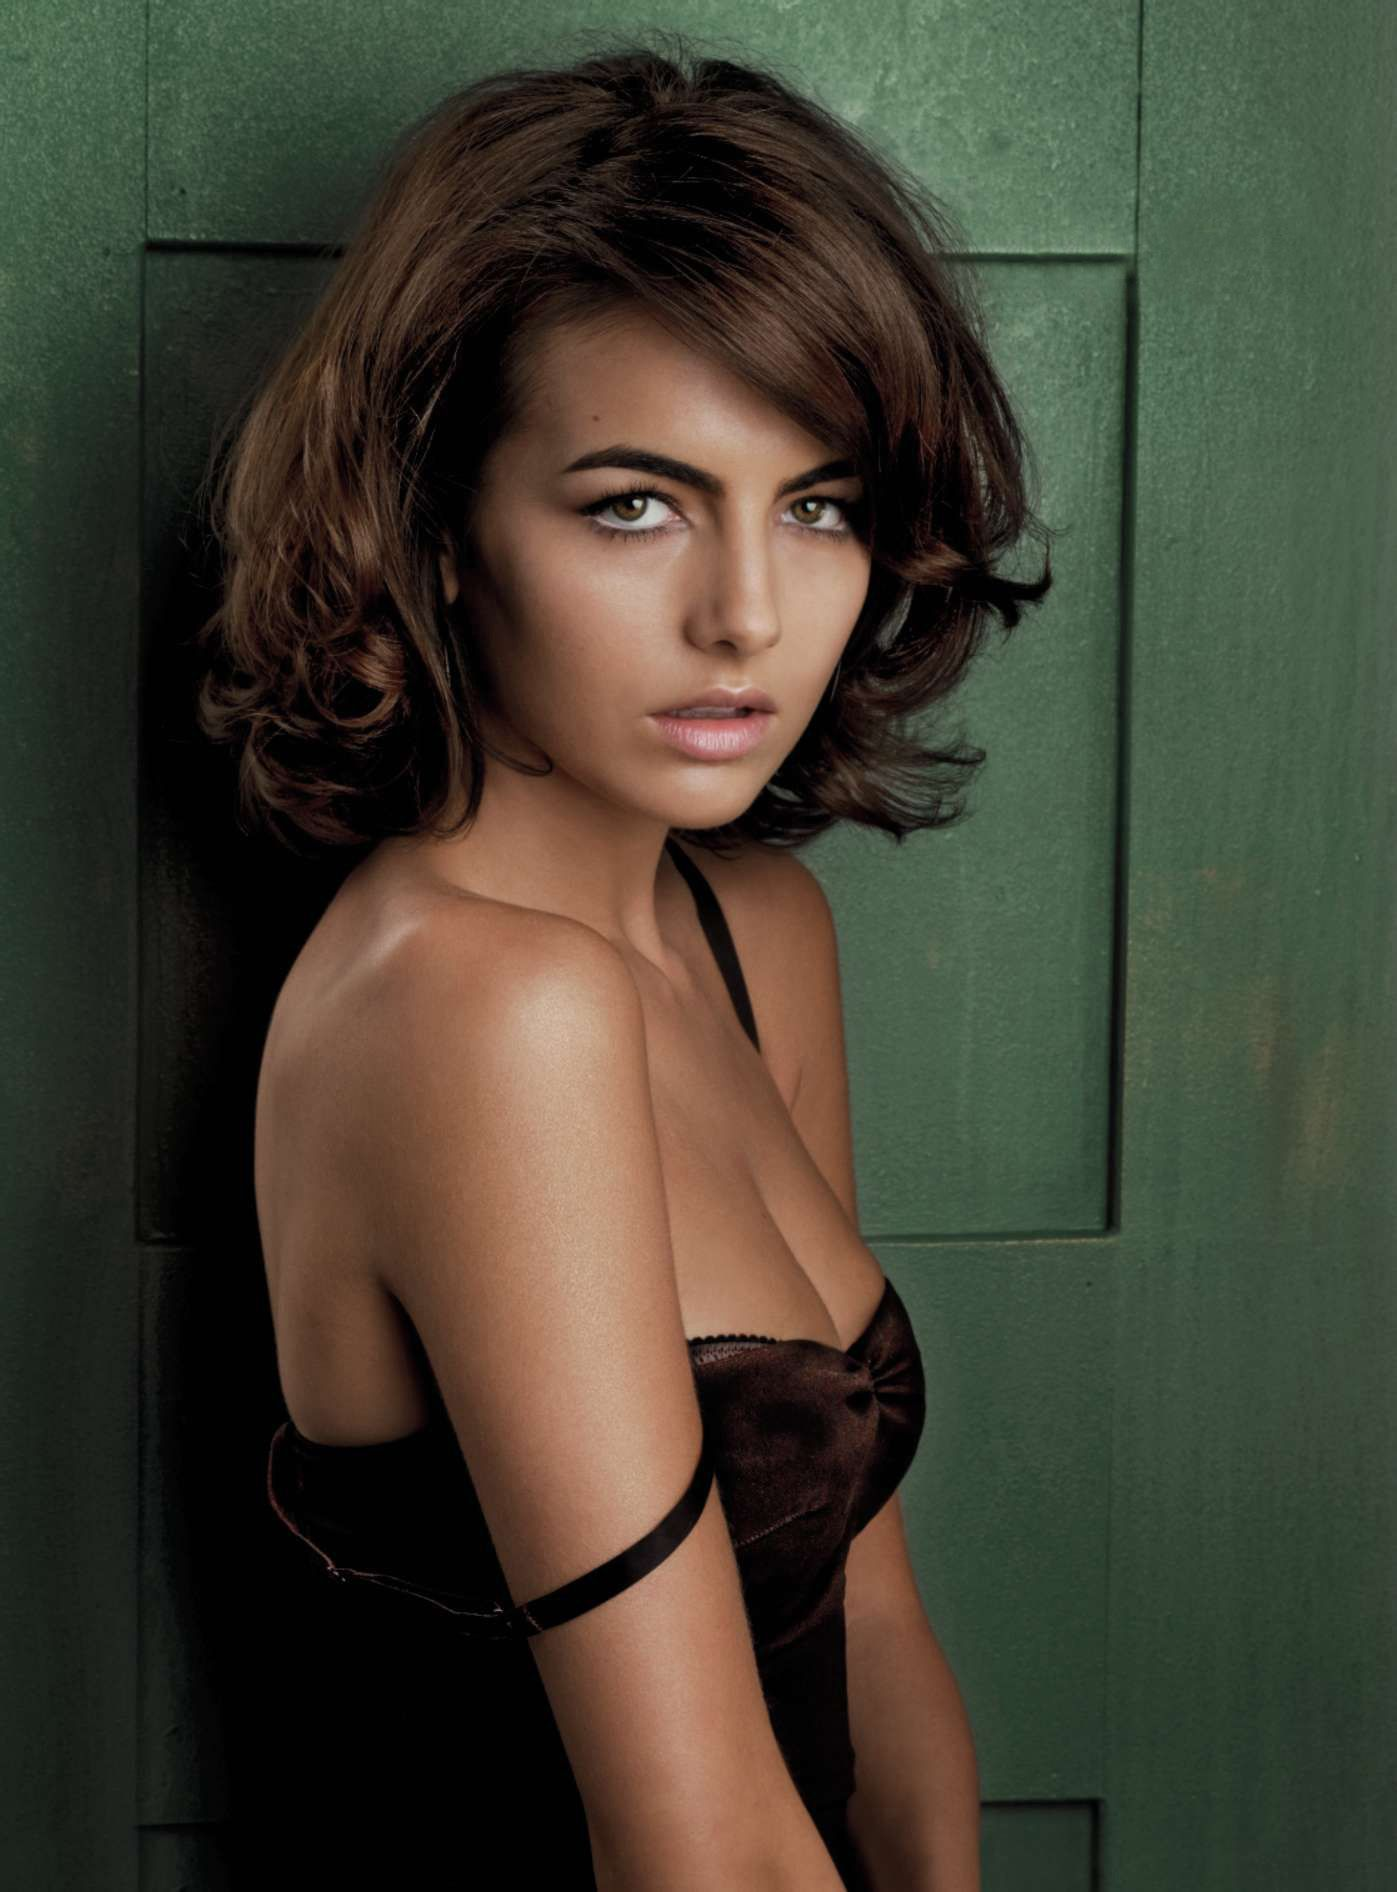 Maxim Hot 100 2010 - 64 Camilla Belle